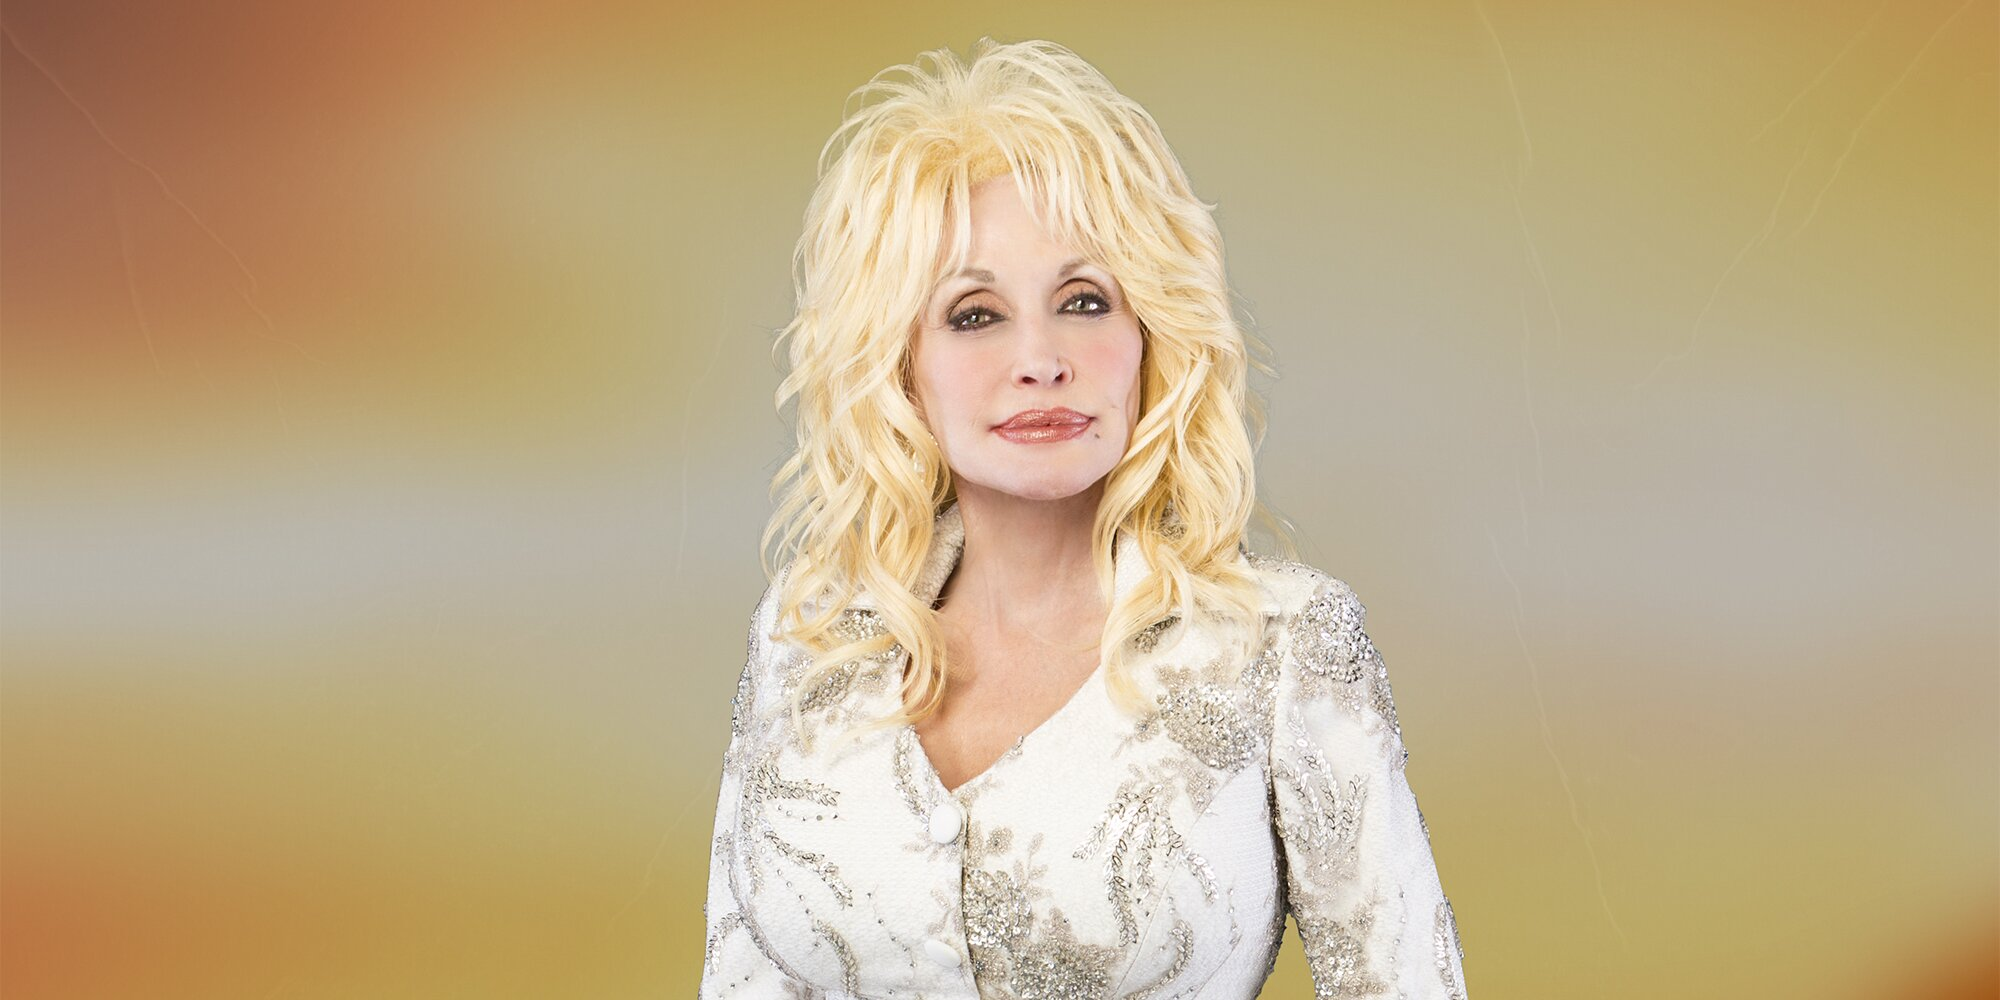 Dolly Parton used royalties from 'I Will Always Love You' to support a Black neighborhood in Nashville